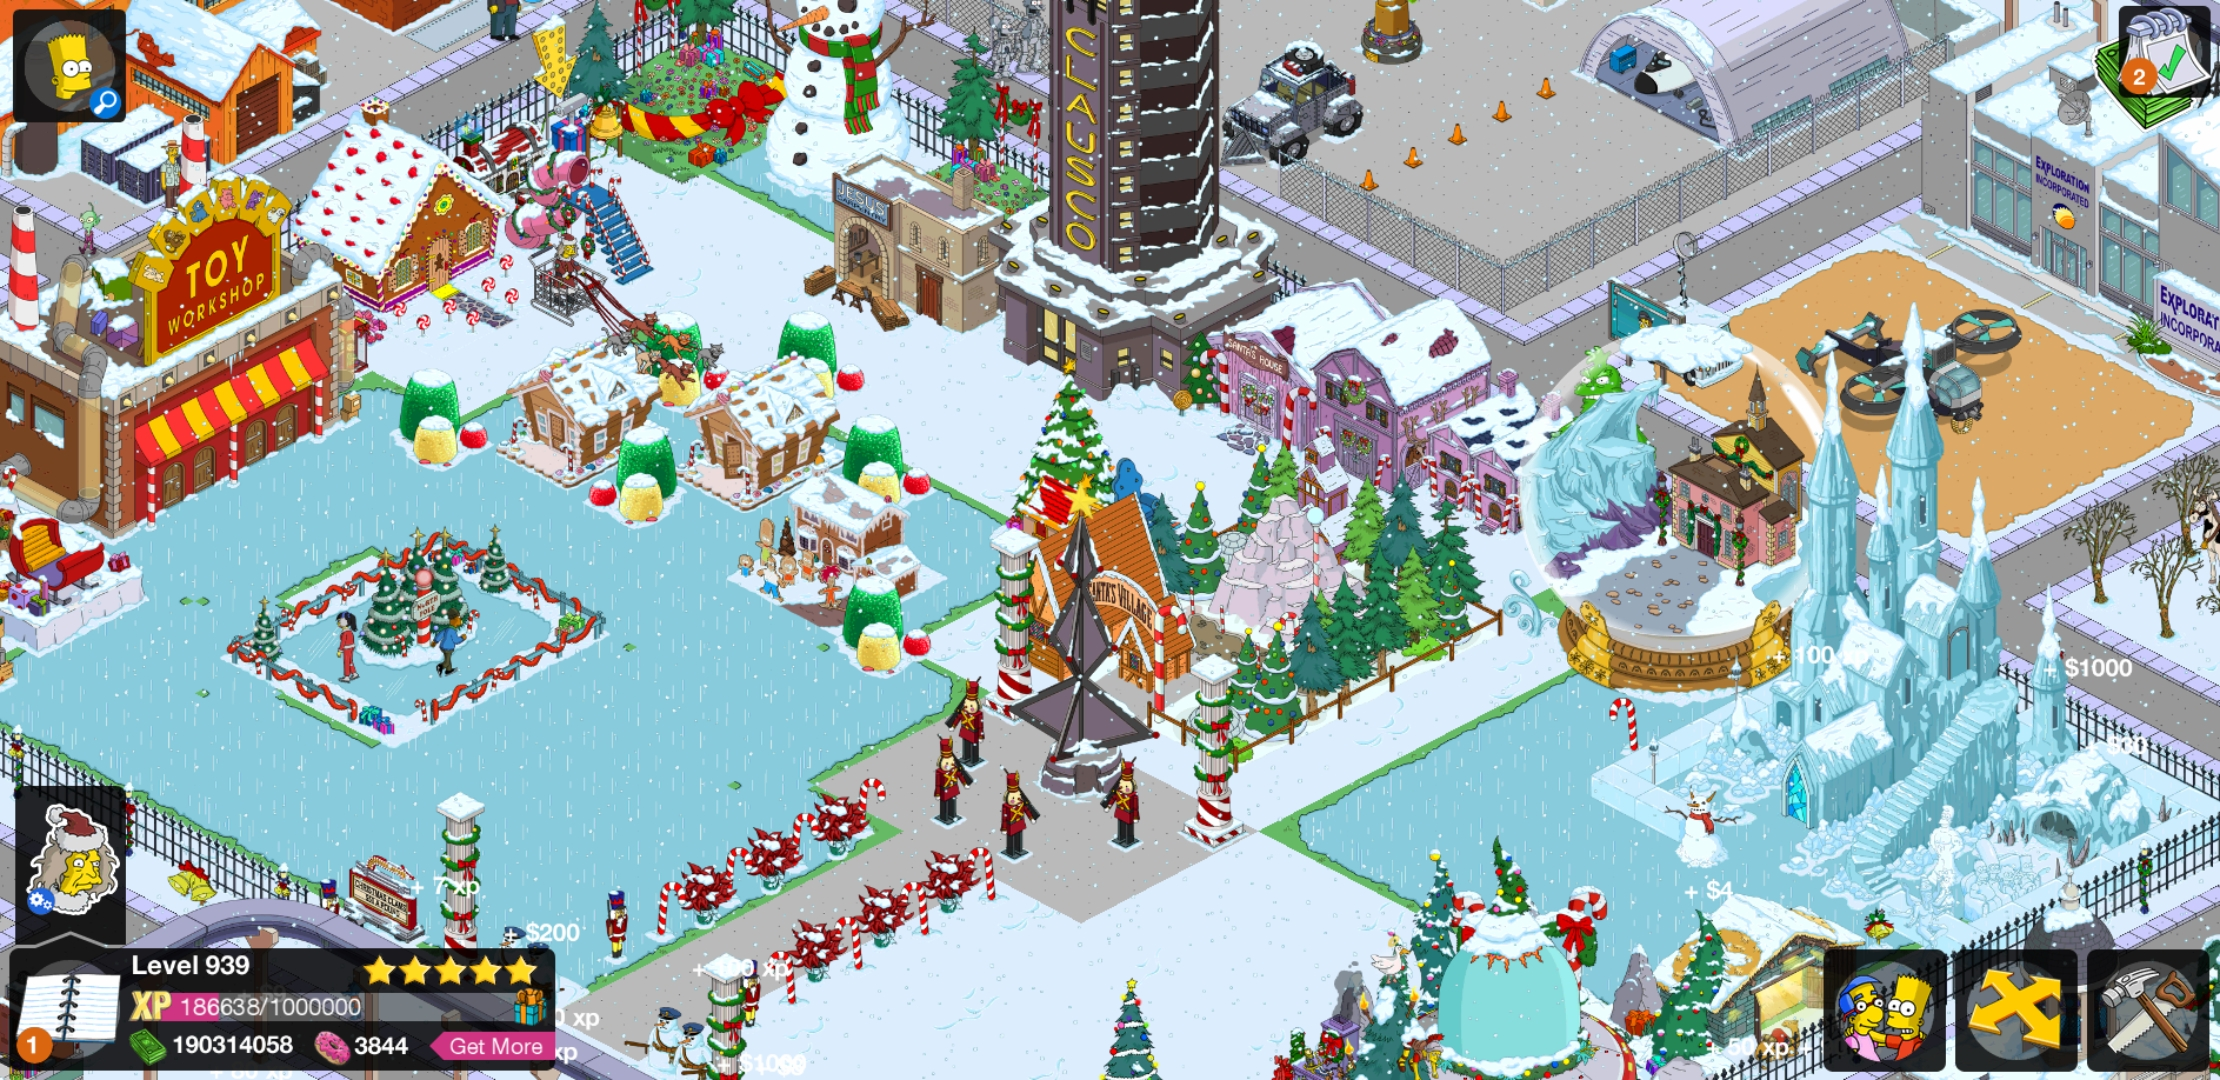 The Simpsons Tapped Out Christmas 2019 All Things The Simpsons Tapped Out for the Tapped Out Addict in